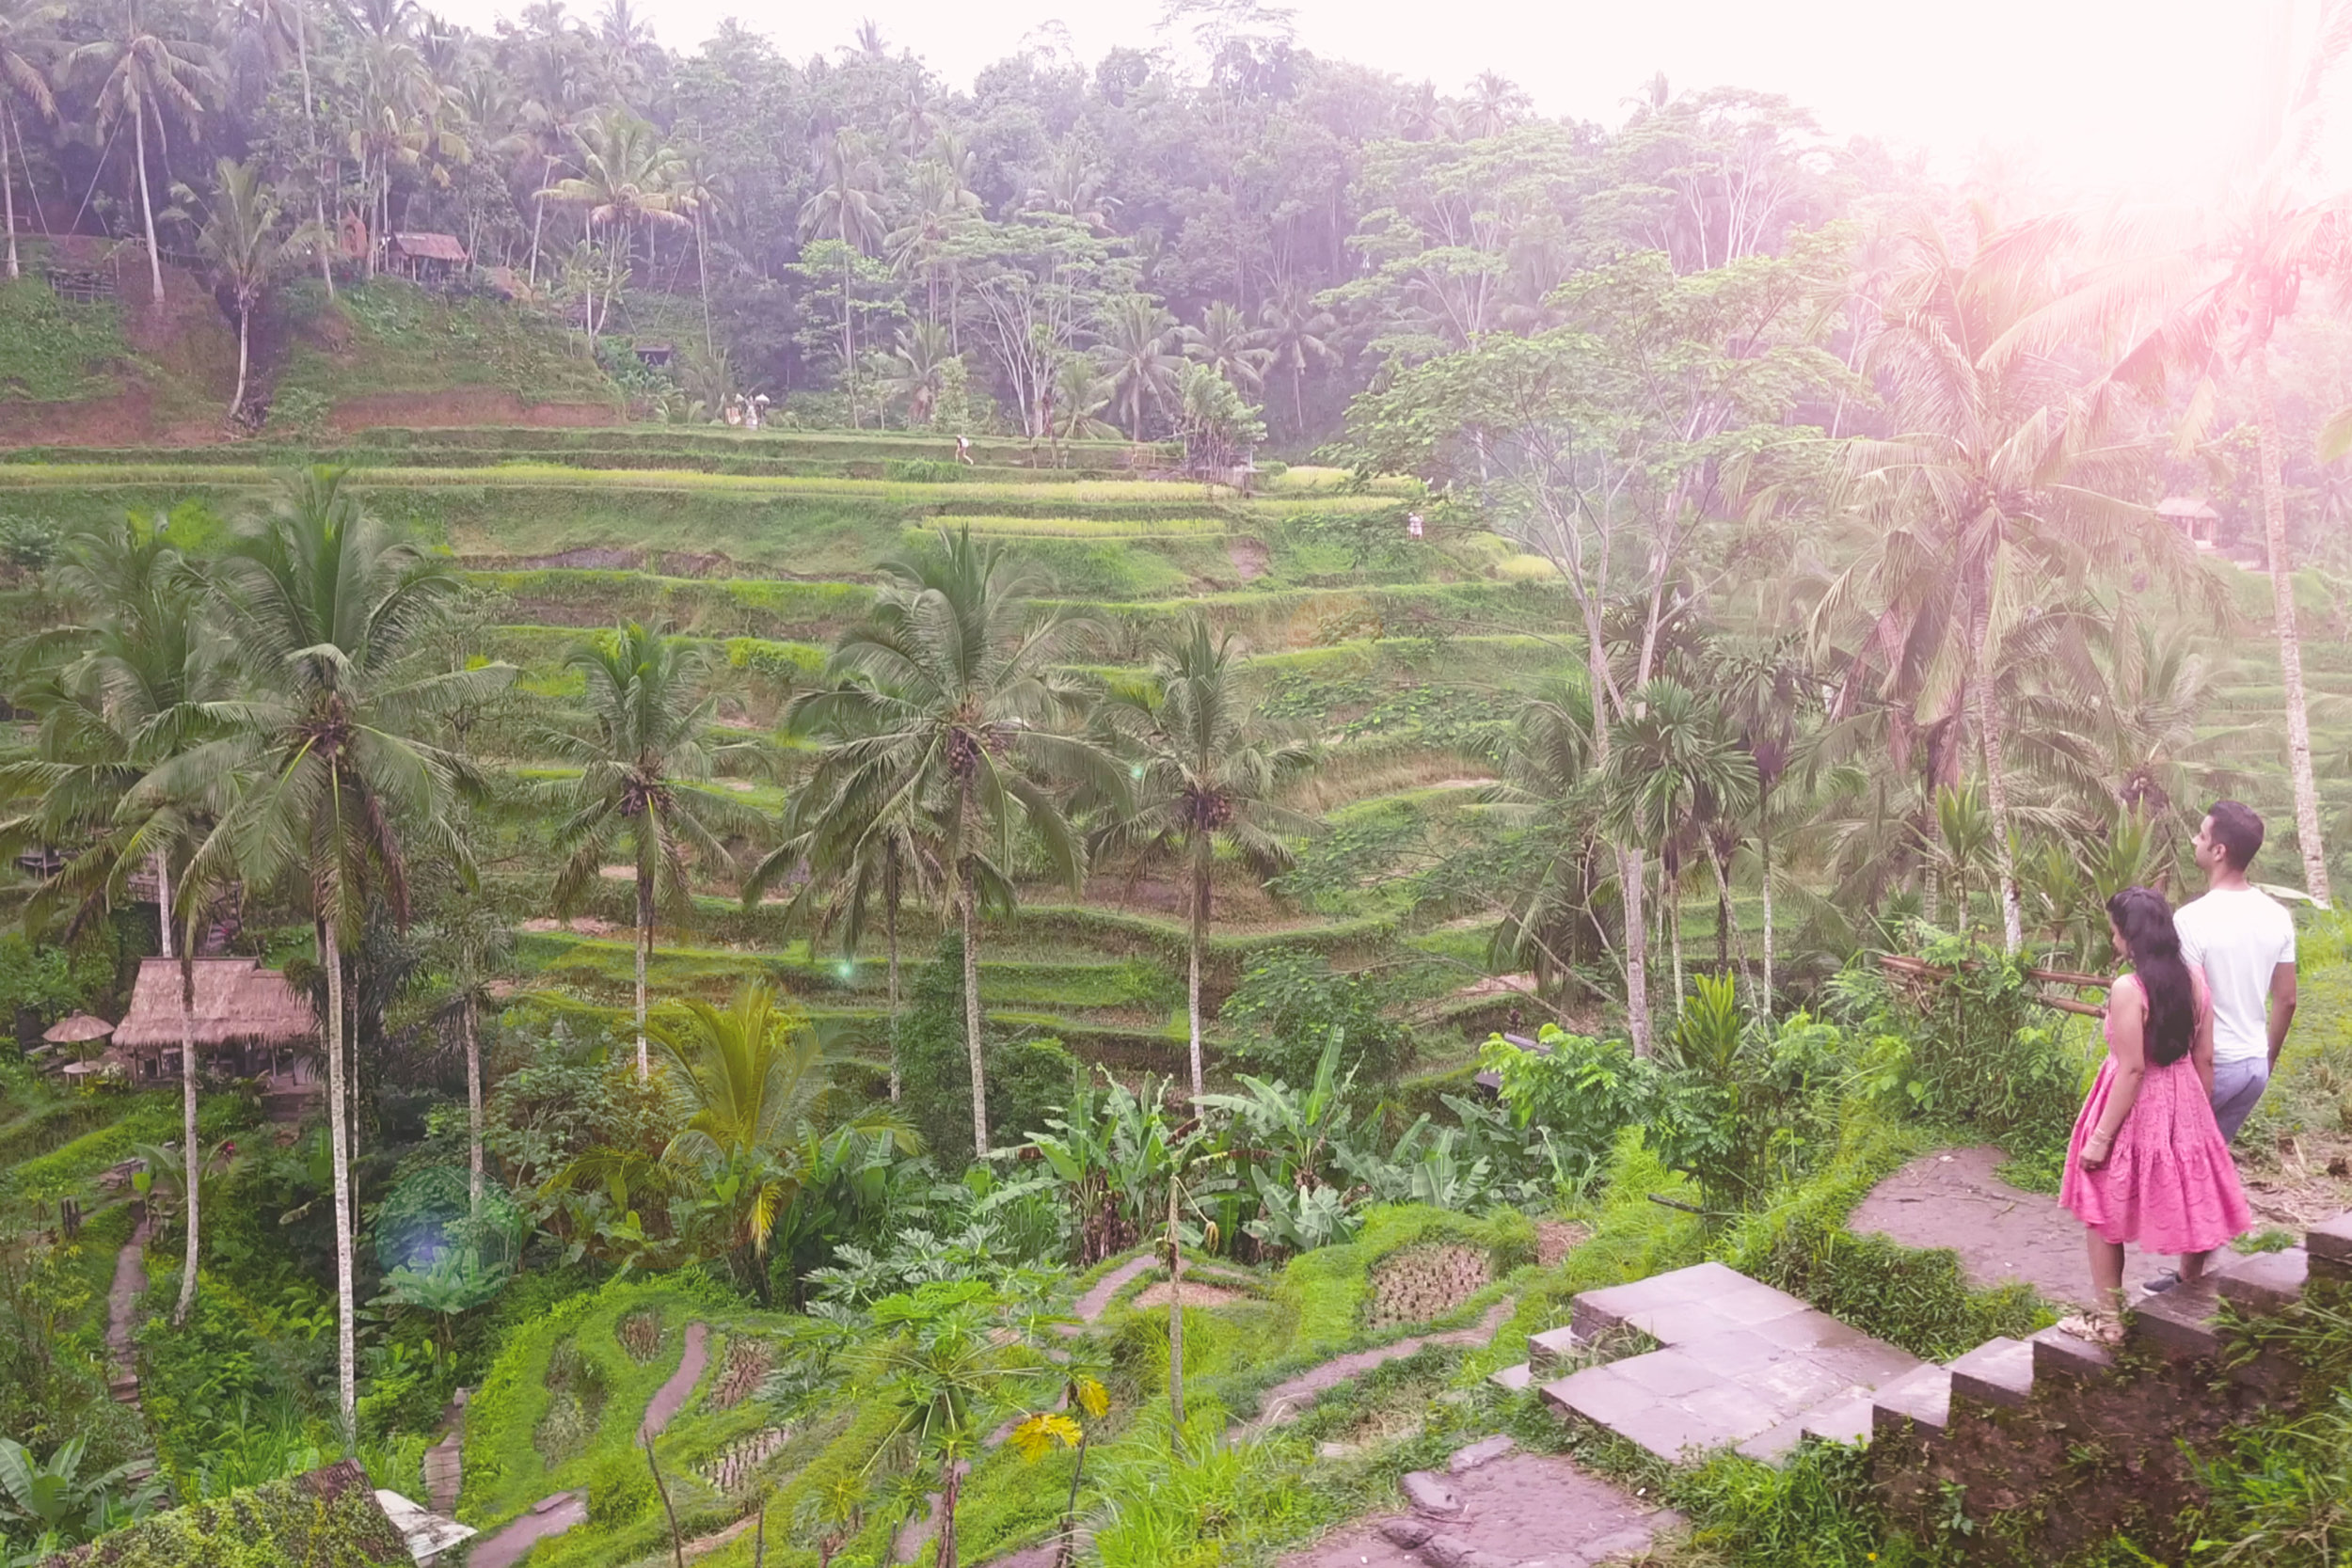 There are so many beautiful rice fields in Bali, including Tegallalung just outside Ubud.